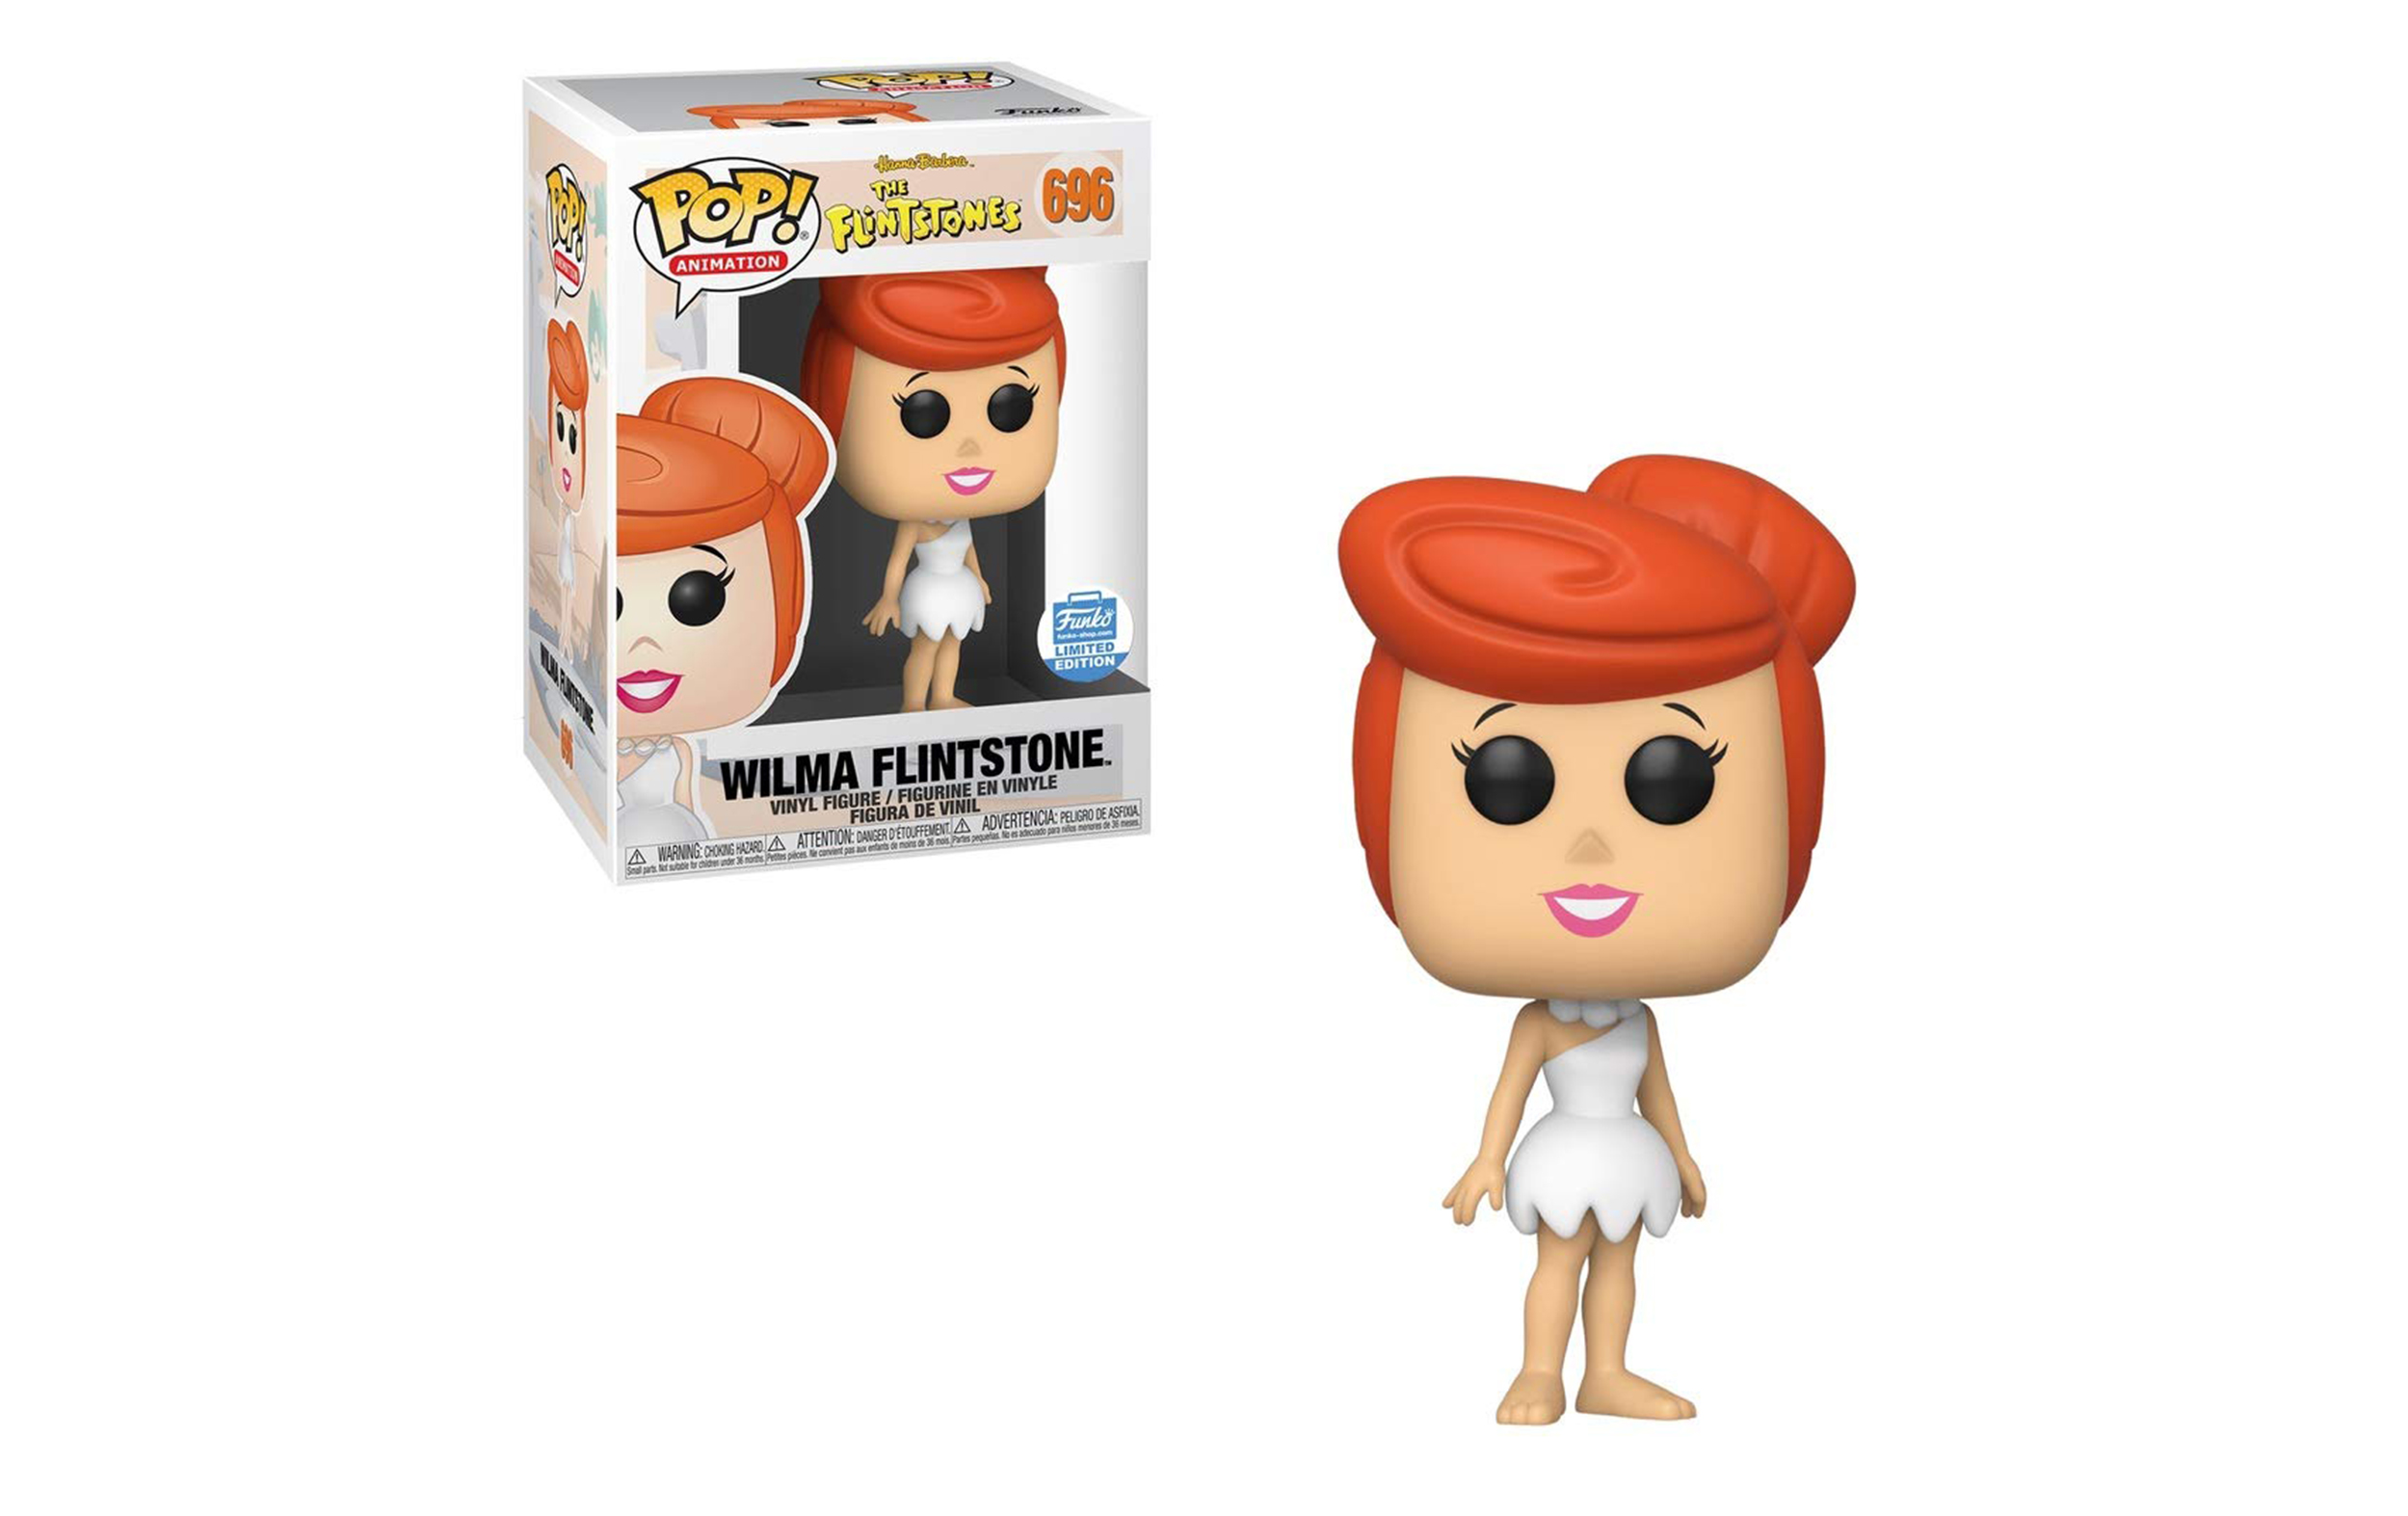 The Flintstones Wilma 696 Funko Shop Funko POP Vinyl Figure